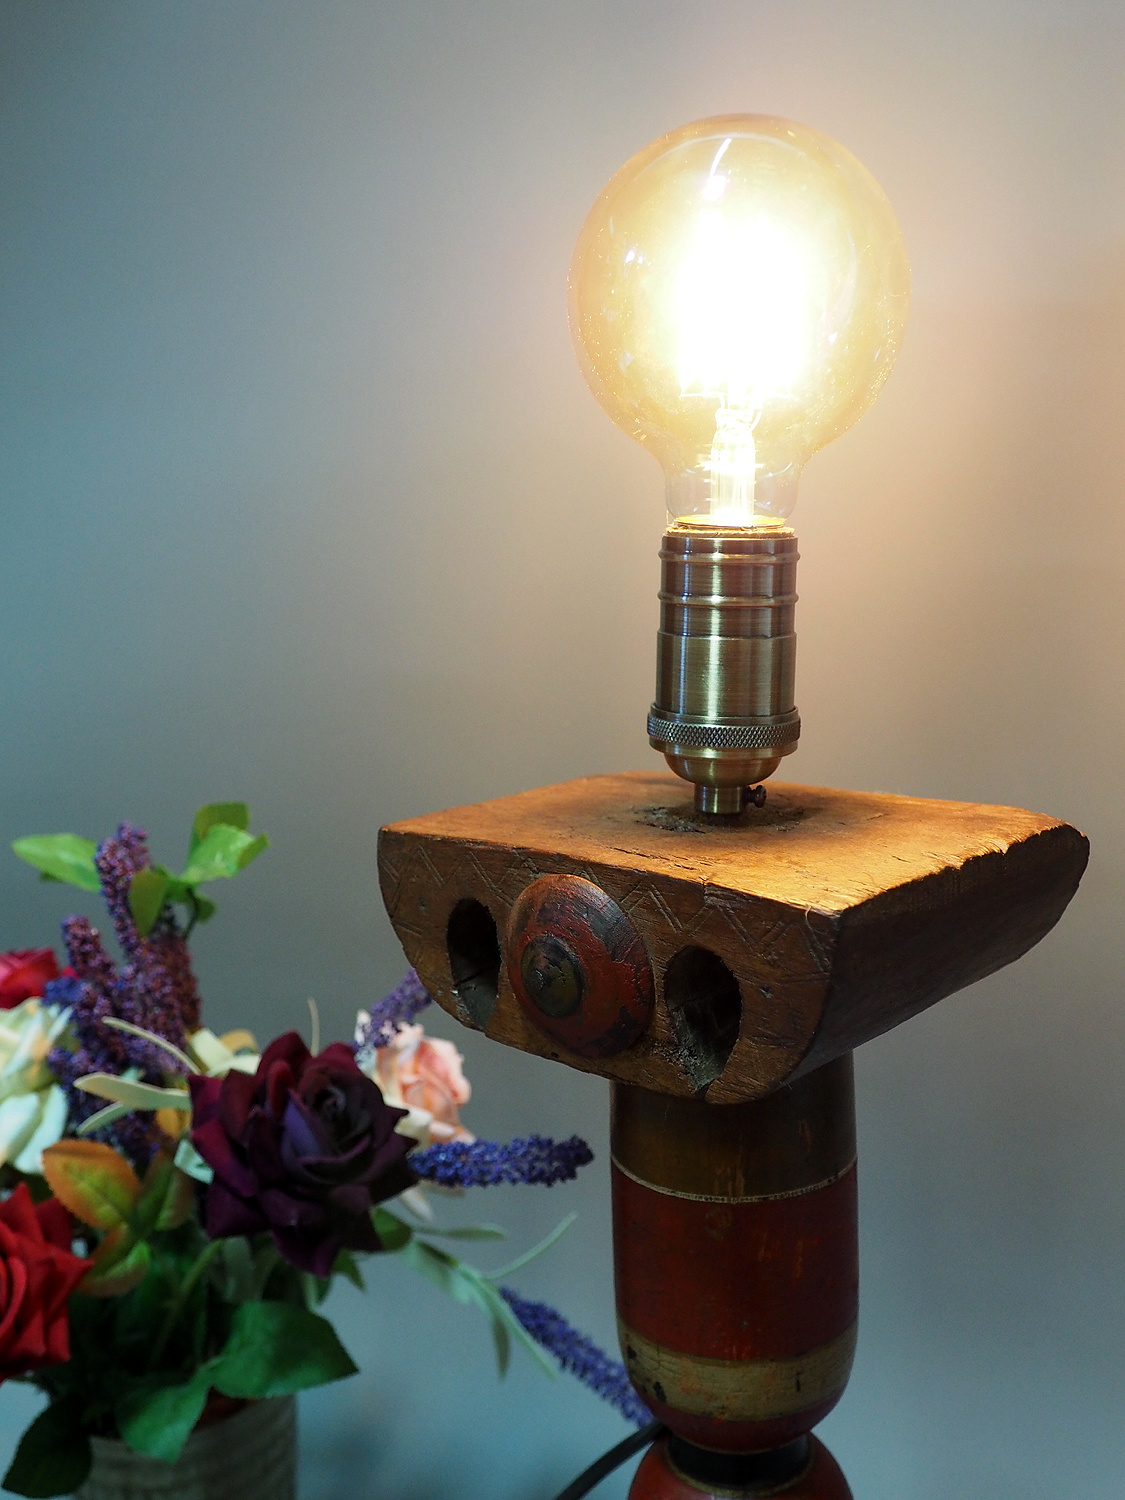 Antique handpainted stunning Vintage Lacquerware wooden Table Lamp with Vintage light fitting from Afghanistan / Pakistan No:21/4